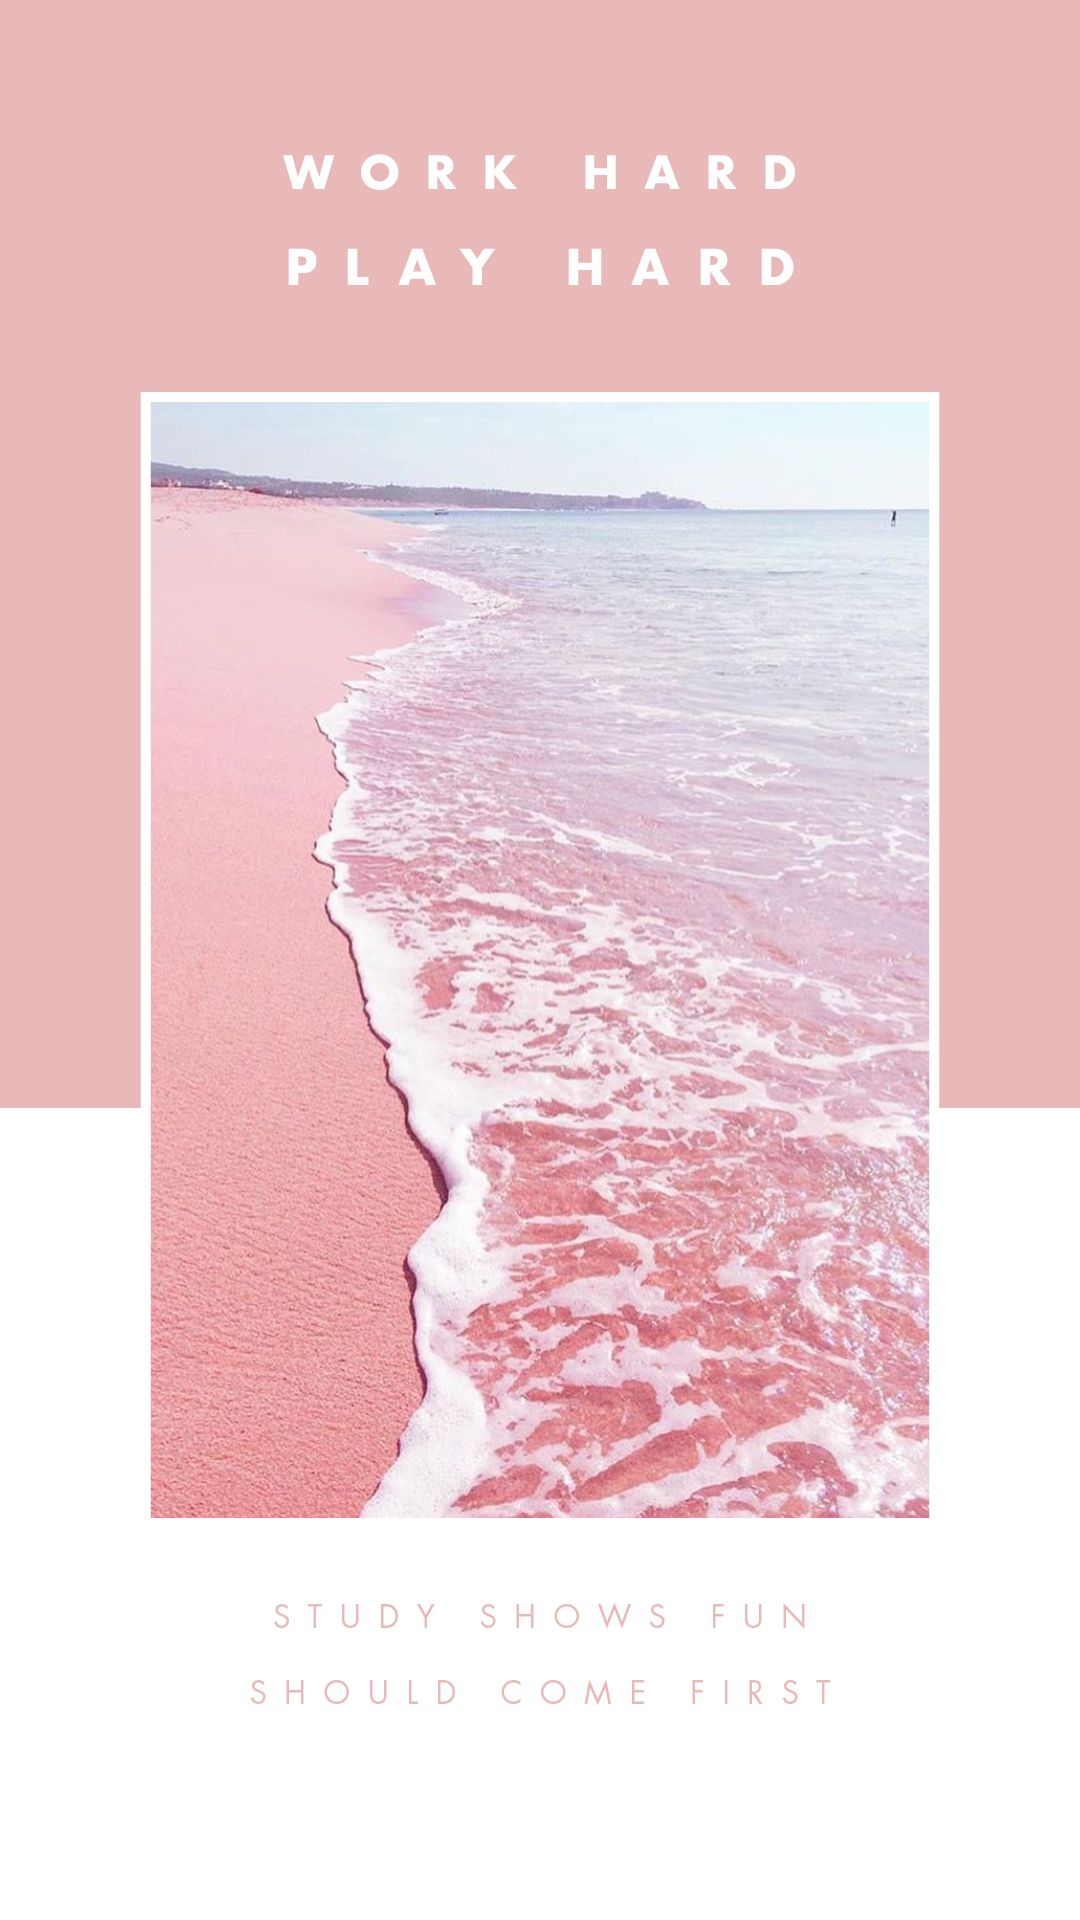 New Study Shows Have Fun First Work Later Create Cultivate Pink Aesthetic Aesthetic Wallpapers Pastel Pink Aesthetic